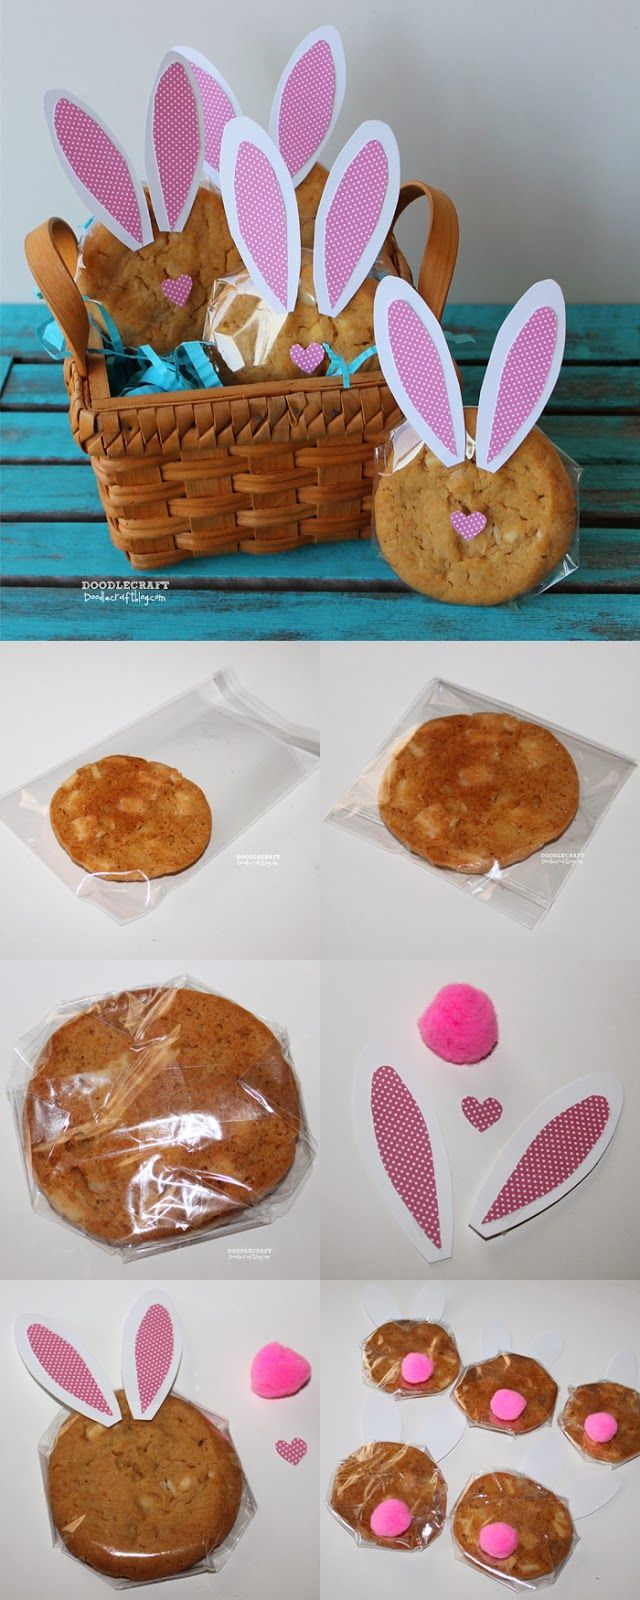 Best 25 easter gifts for kids ideas on pinterest easter party cookies bunny ear cutouts a basket cellophane and a fuzzy tail and youre all set for easter thanks doodlecraft negle Gallery